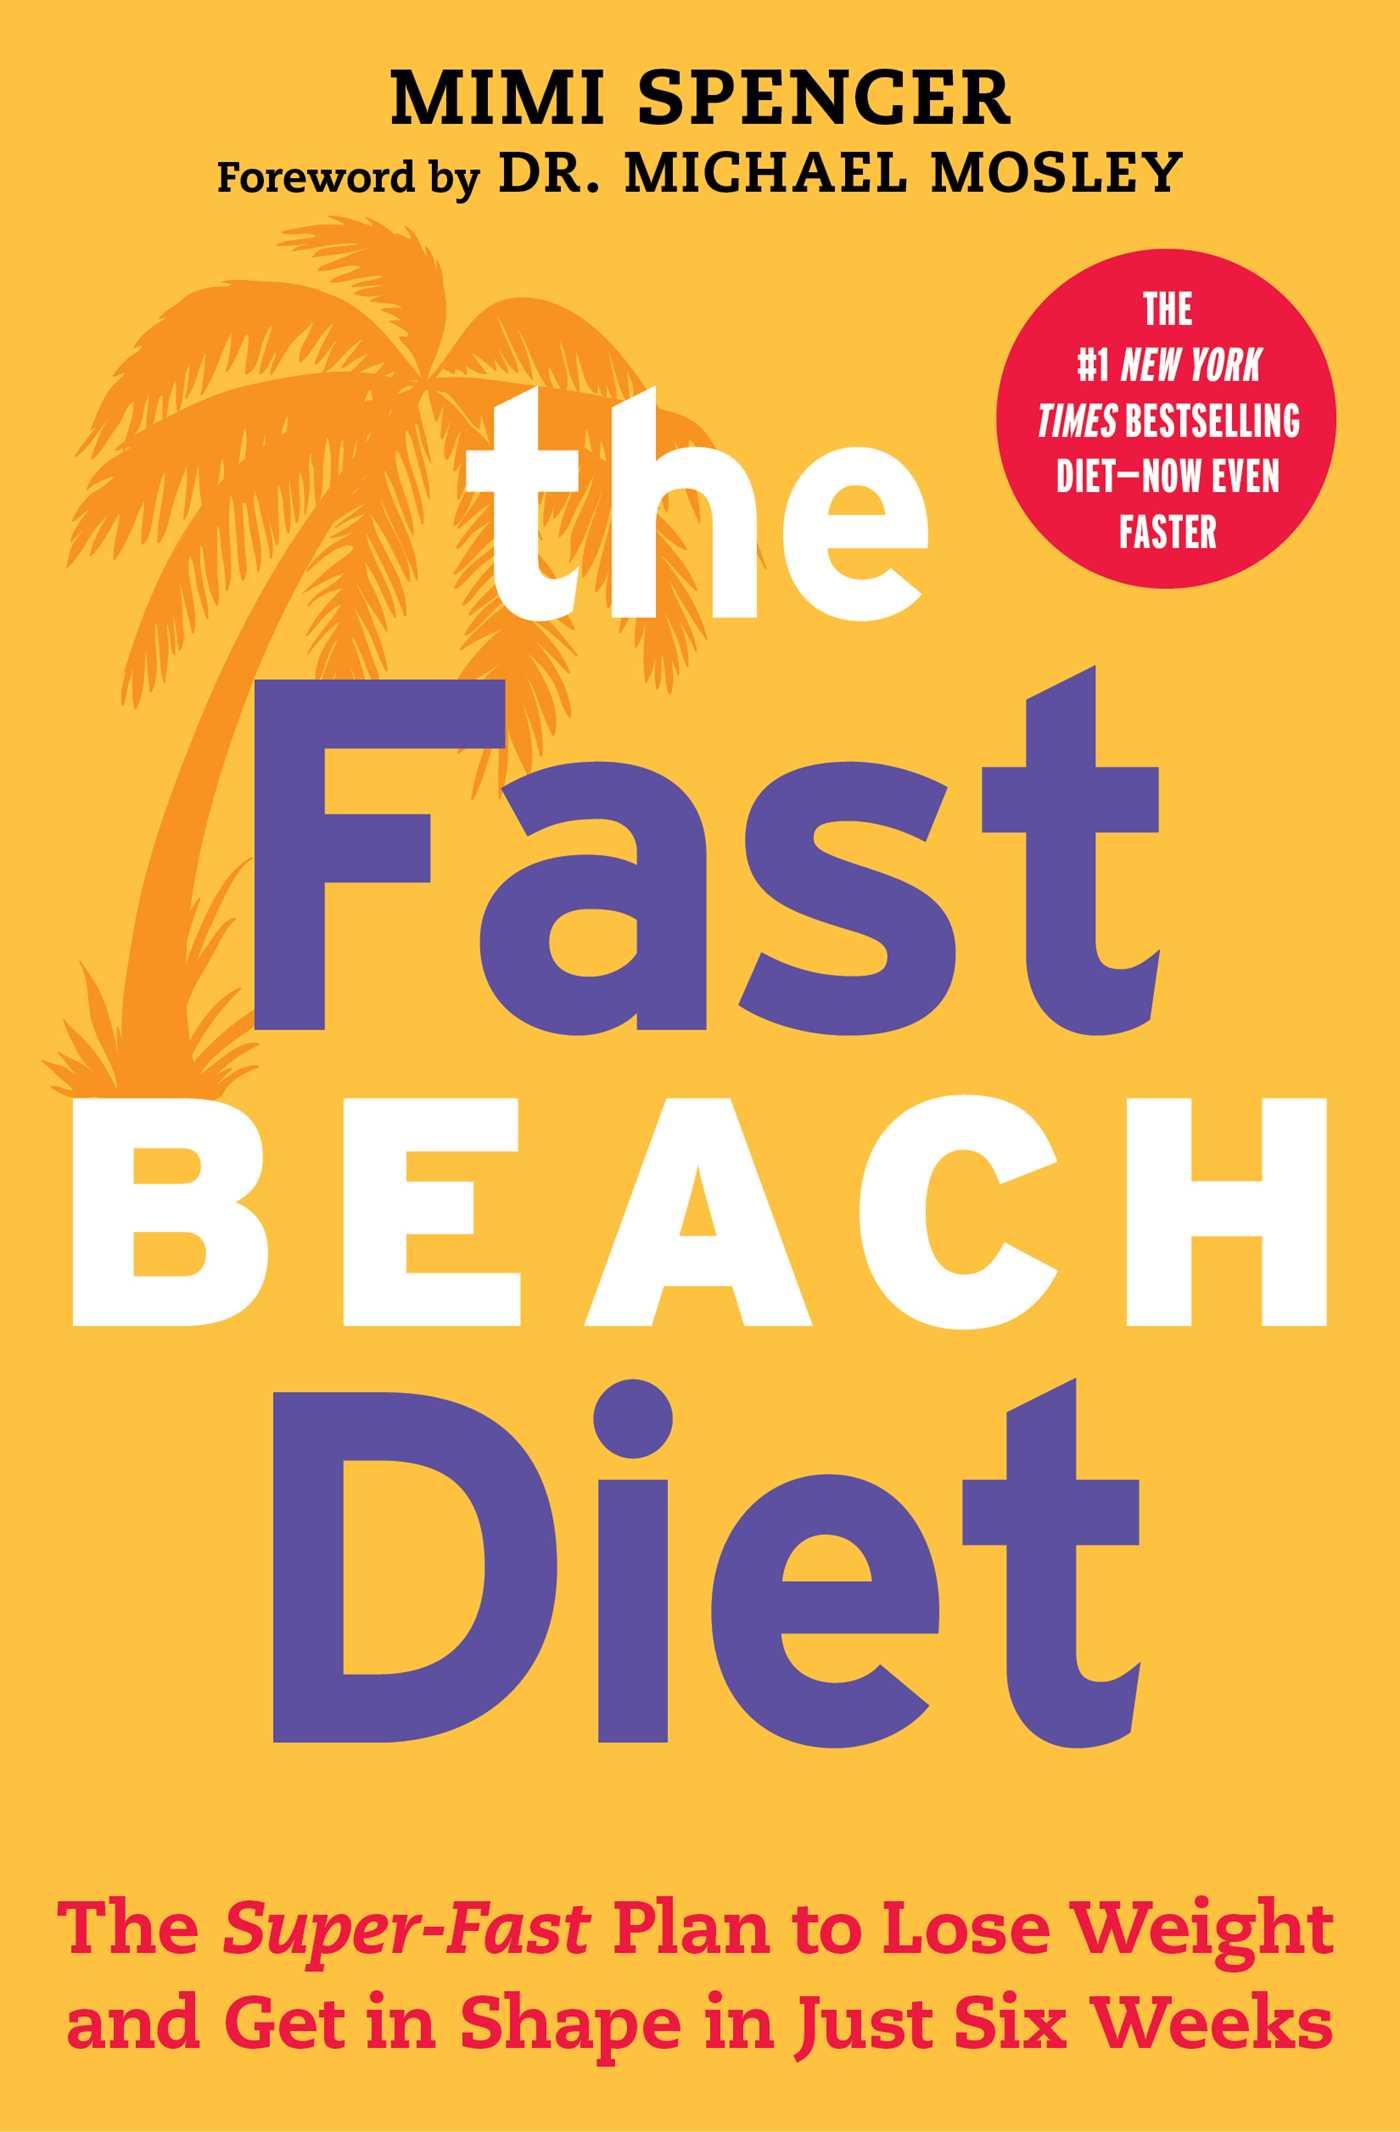 Fast-beach-diet-9781476790398_hr